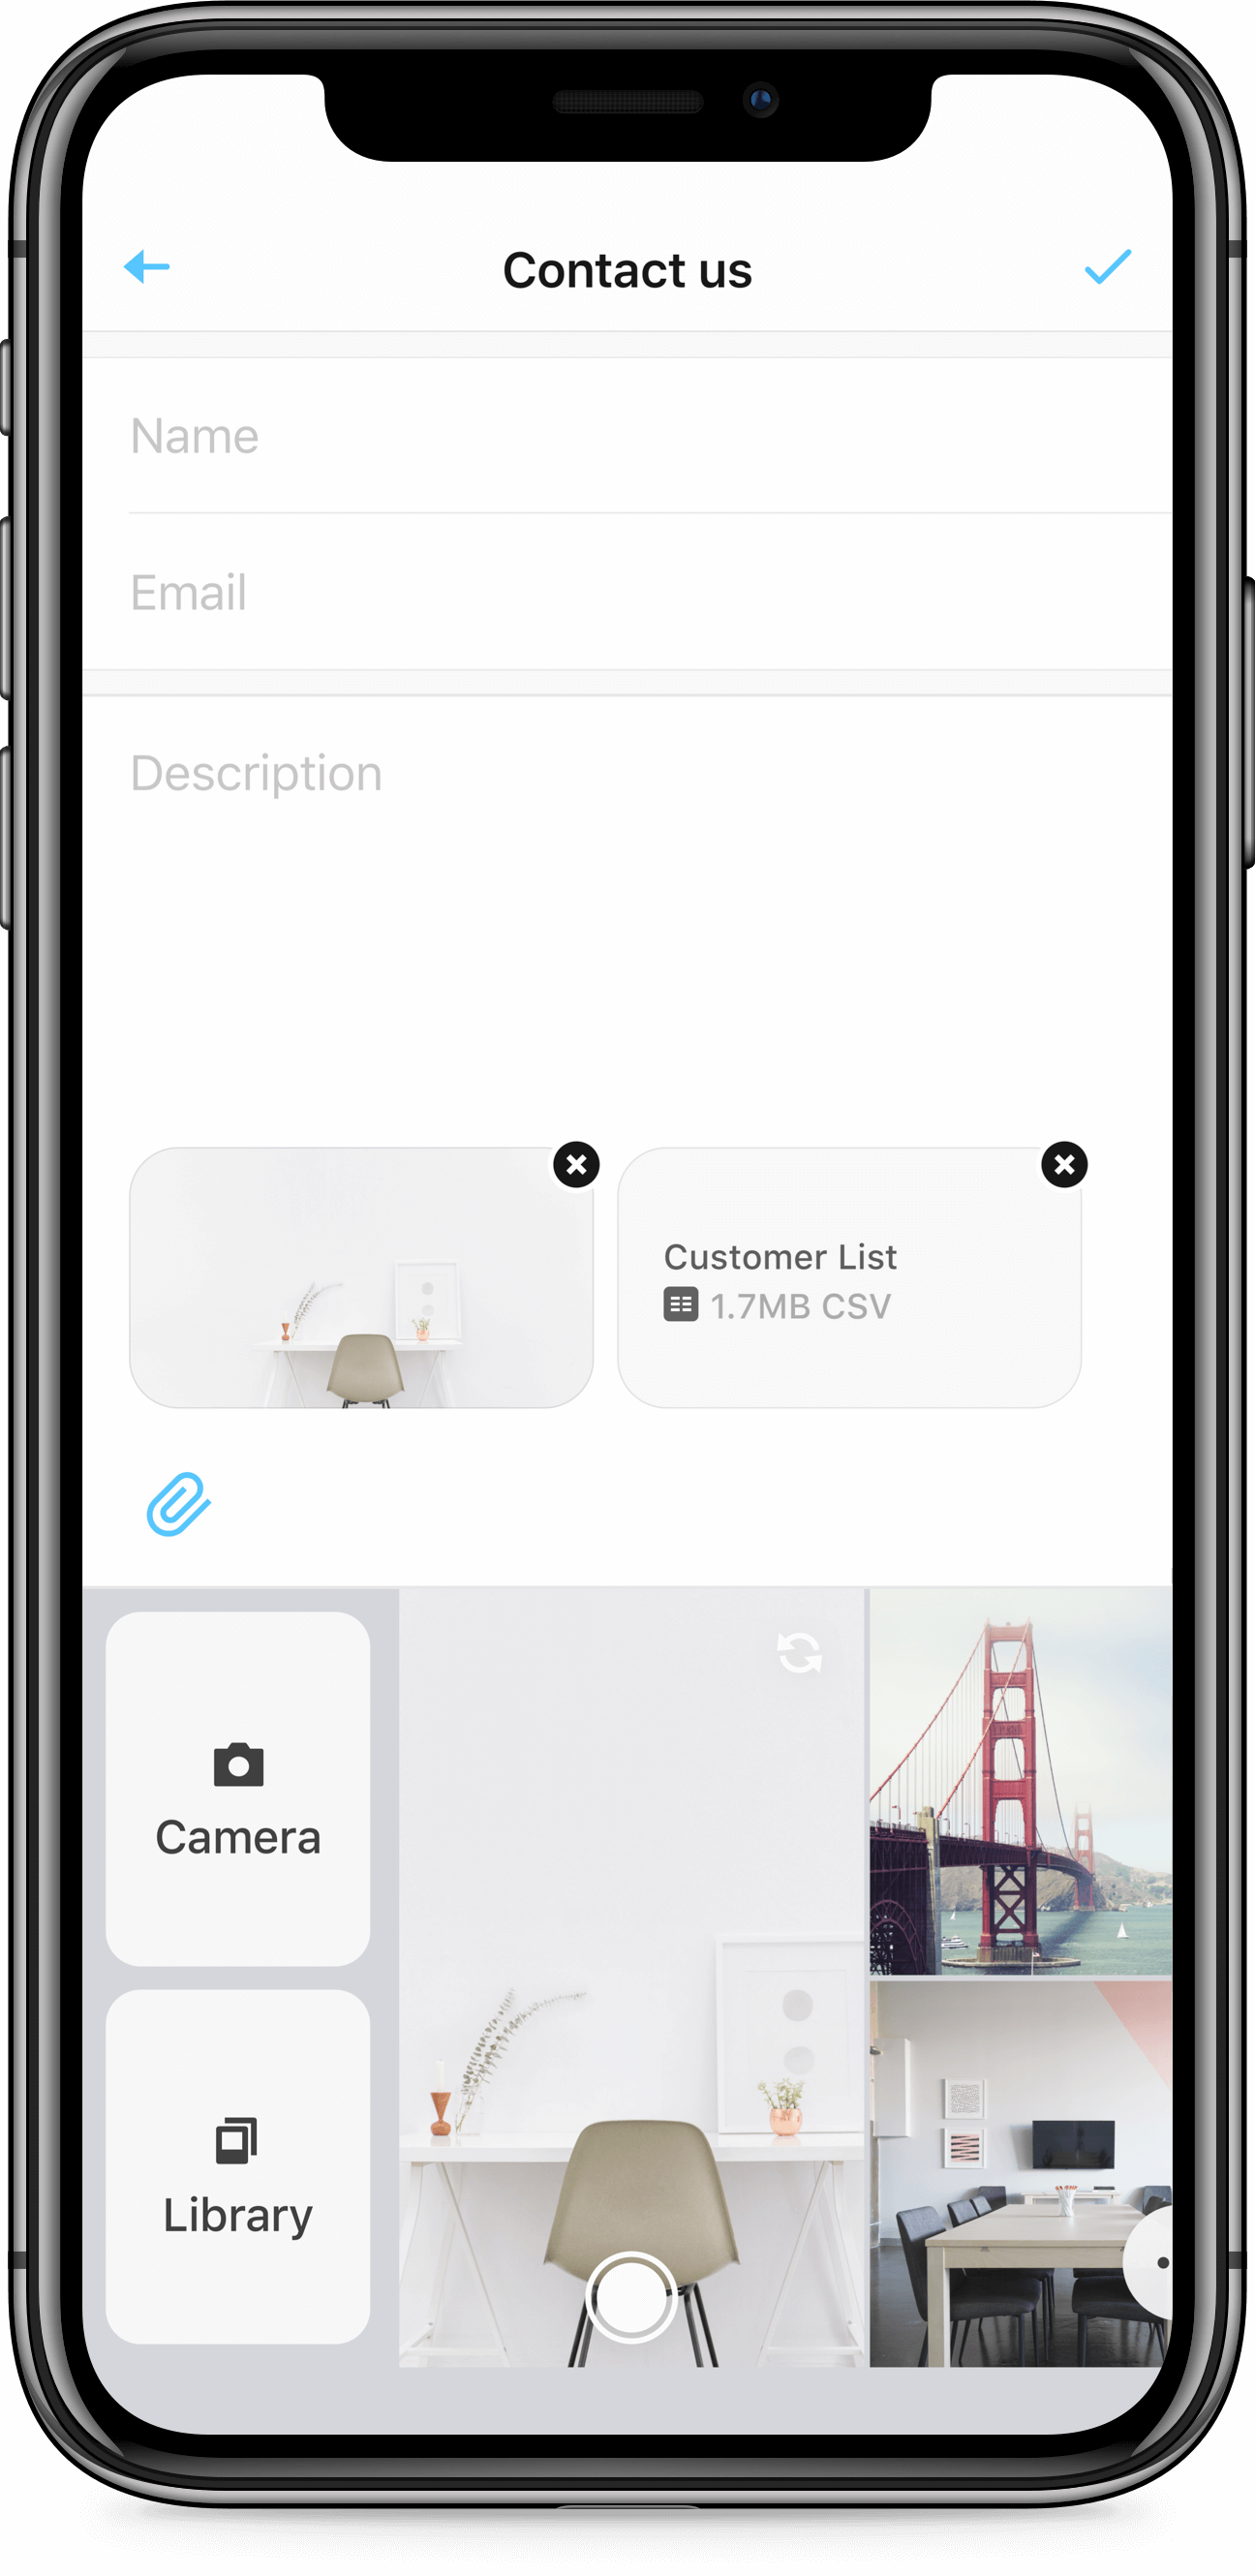 iPhone X screen of Zendesk SDK attachment picker